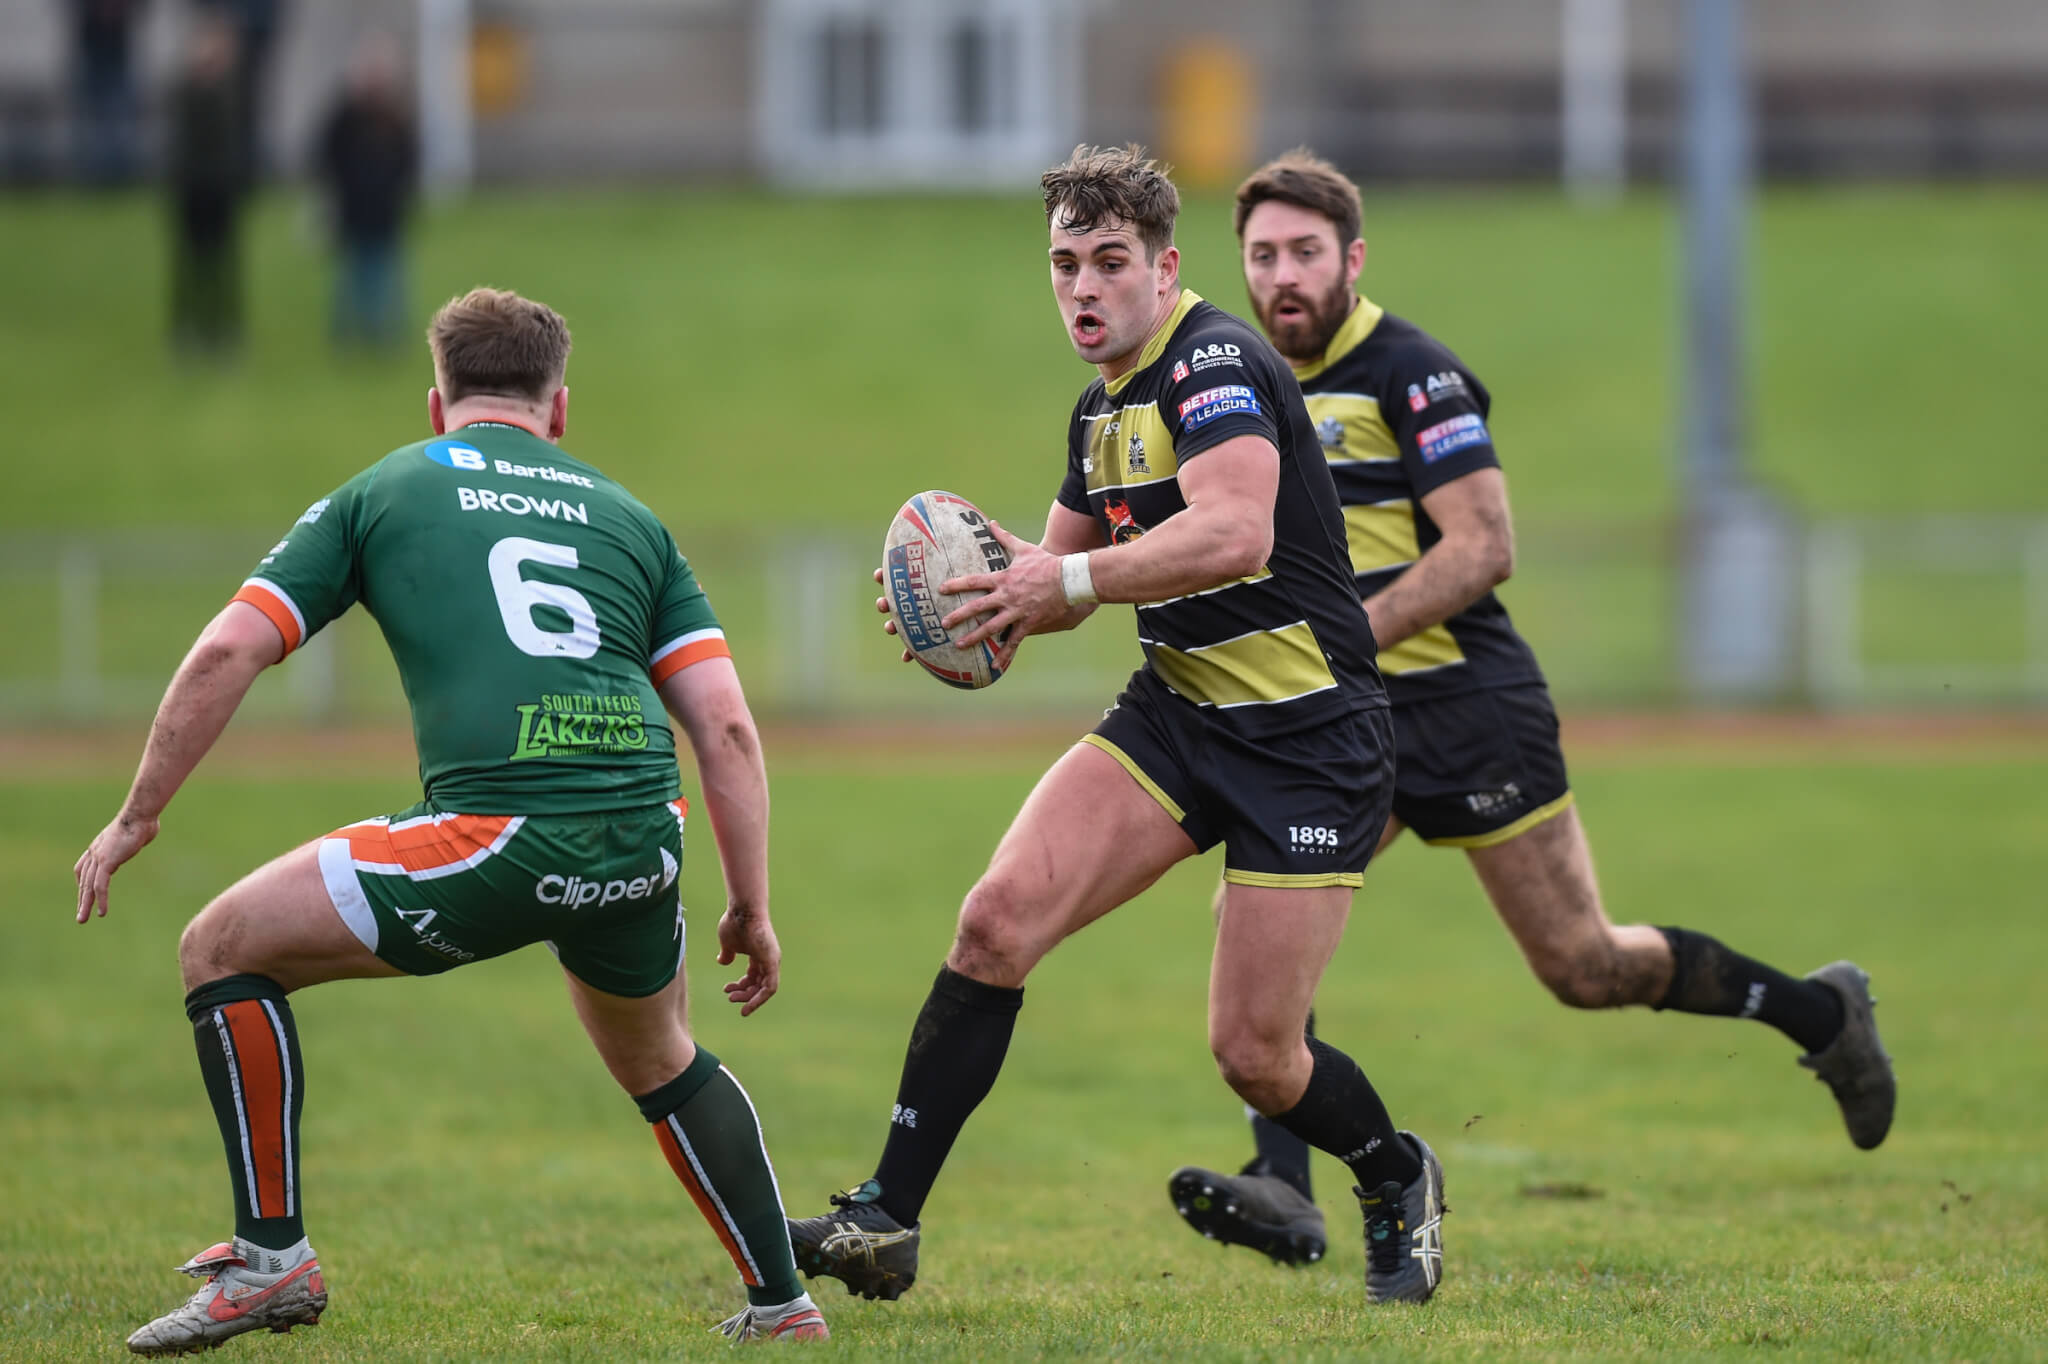 Report: North Wales Crusaders 18-22 Hunslet